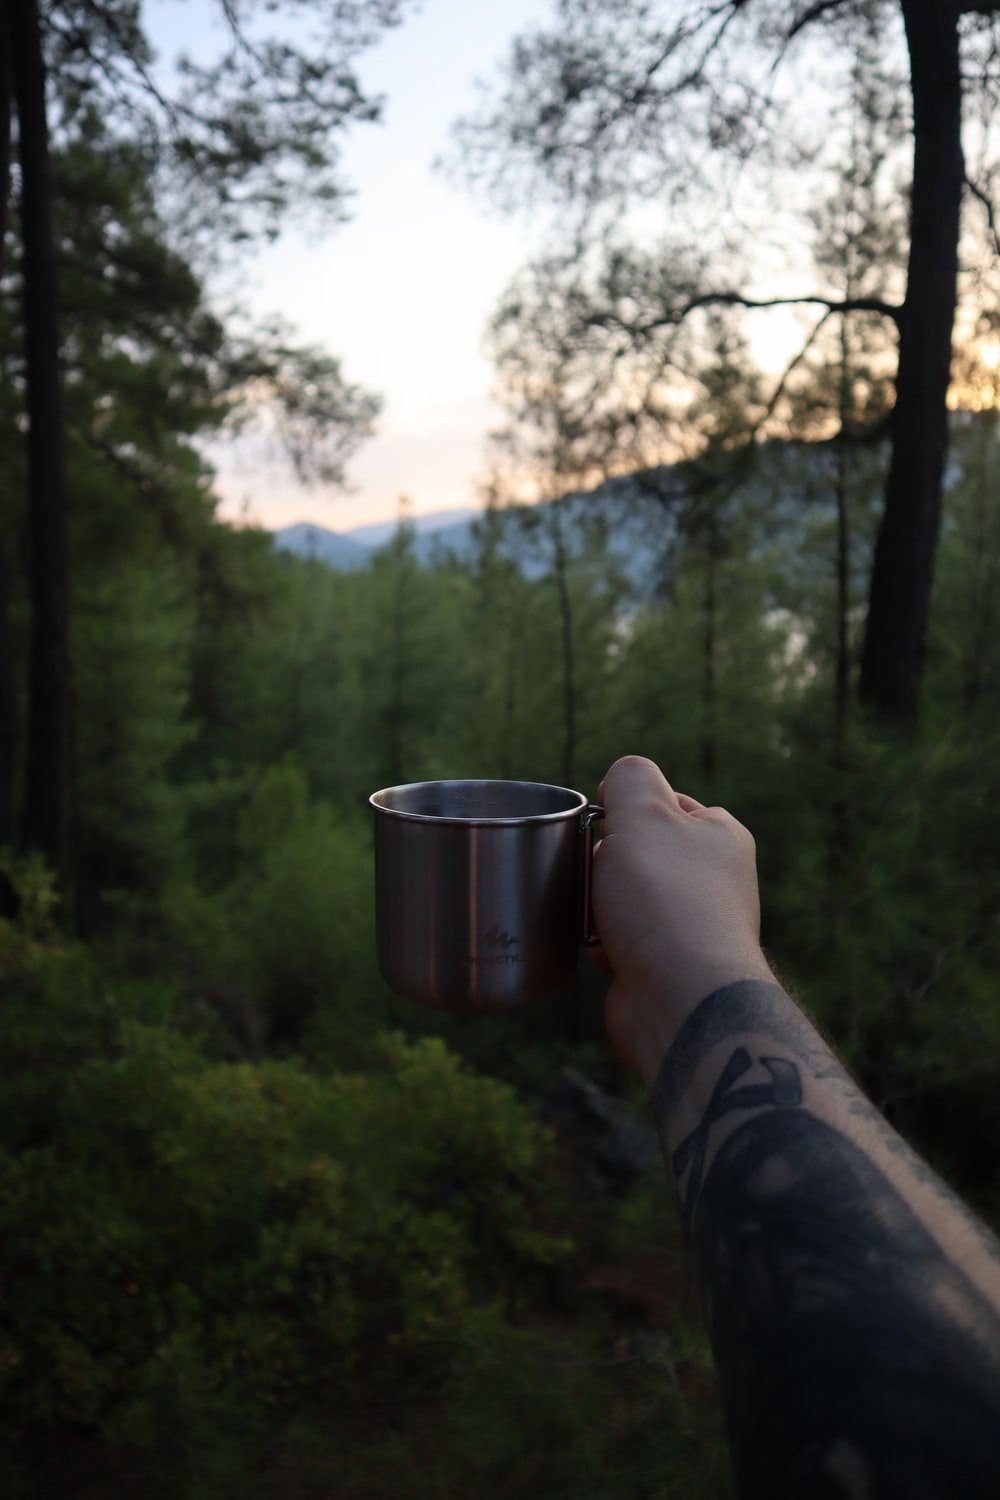 person holding stainless steel cup